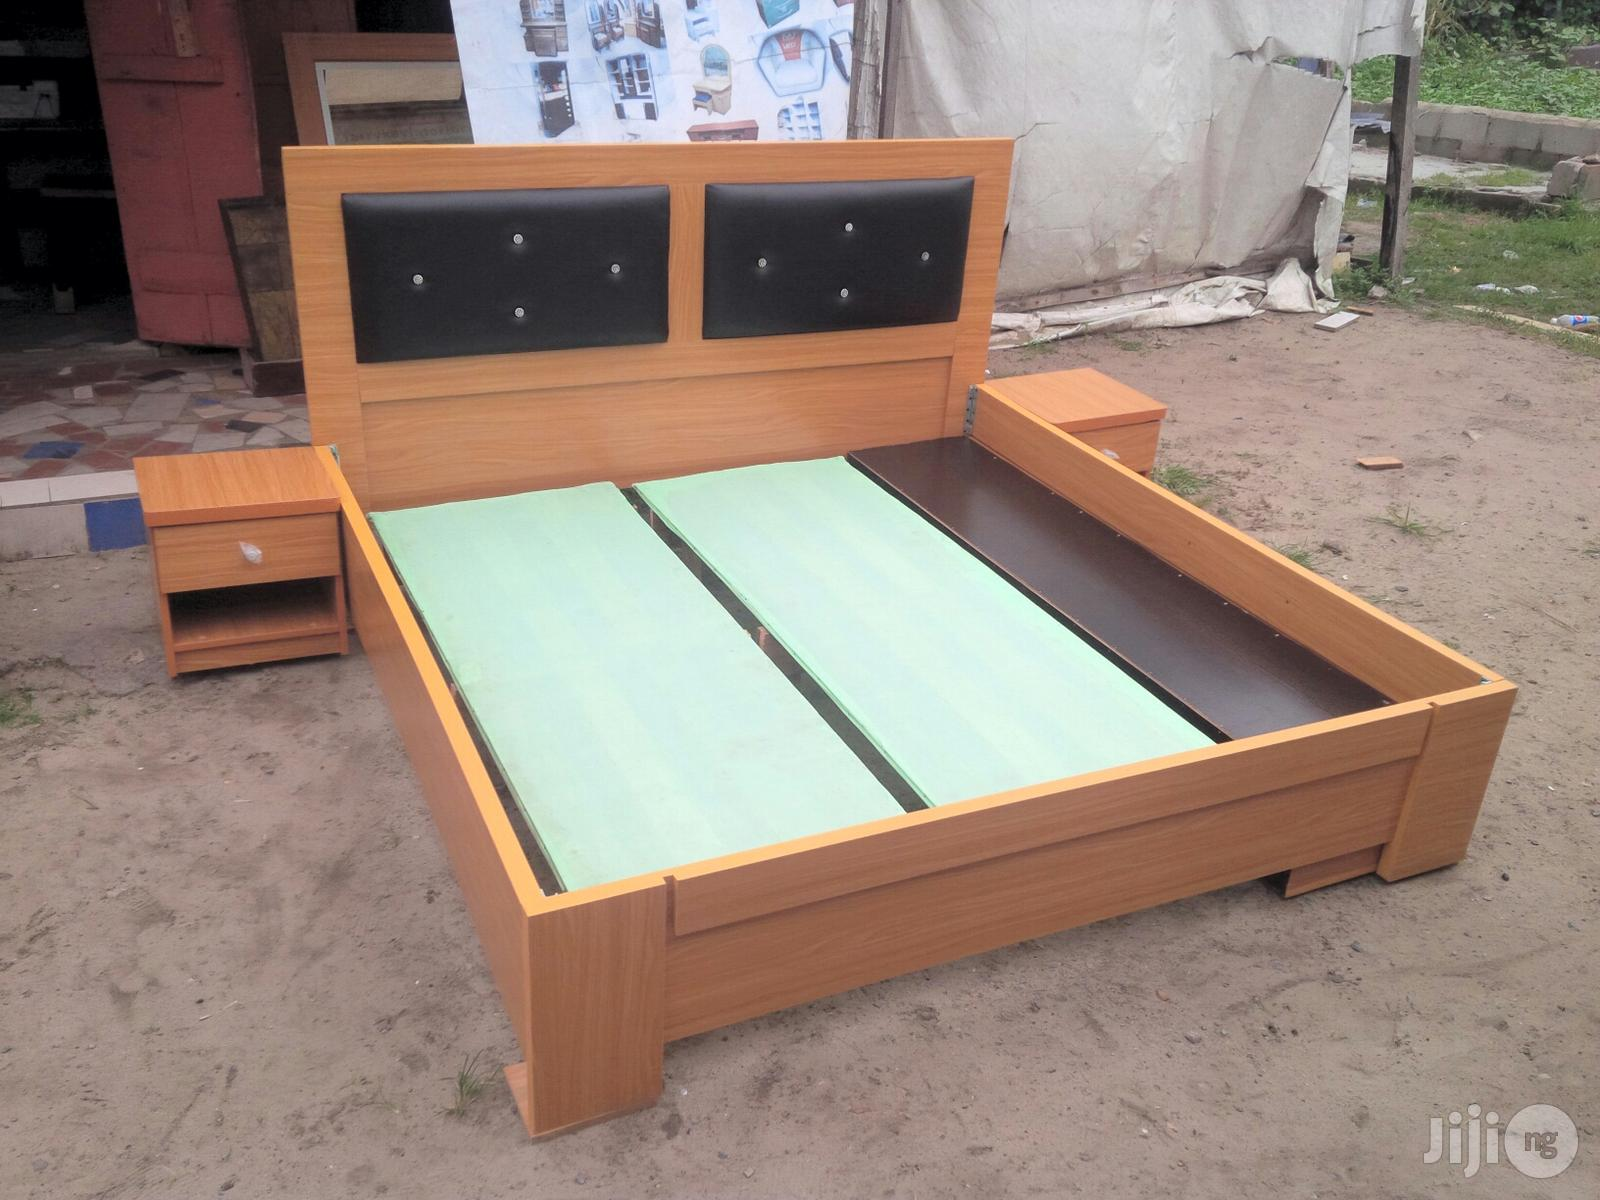 6 By 6 Bed Frame | Furniture for sale in Lekki, Lagos State, Nigeria